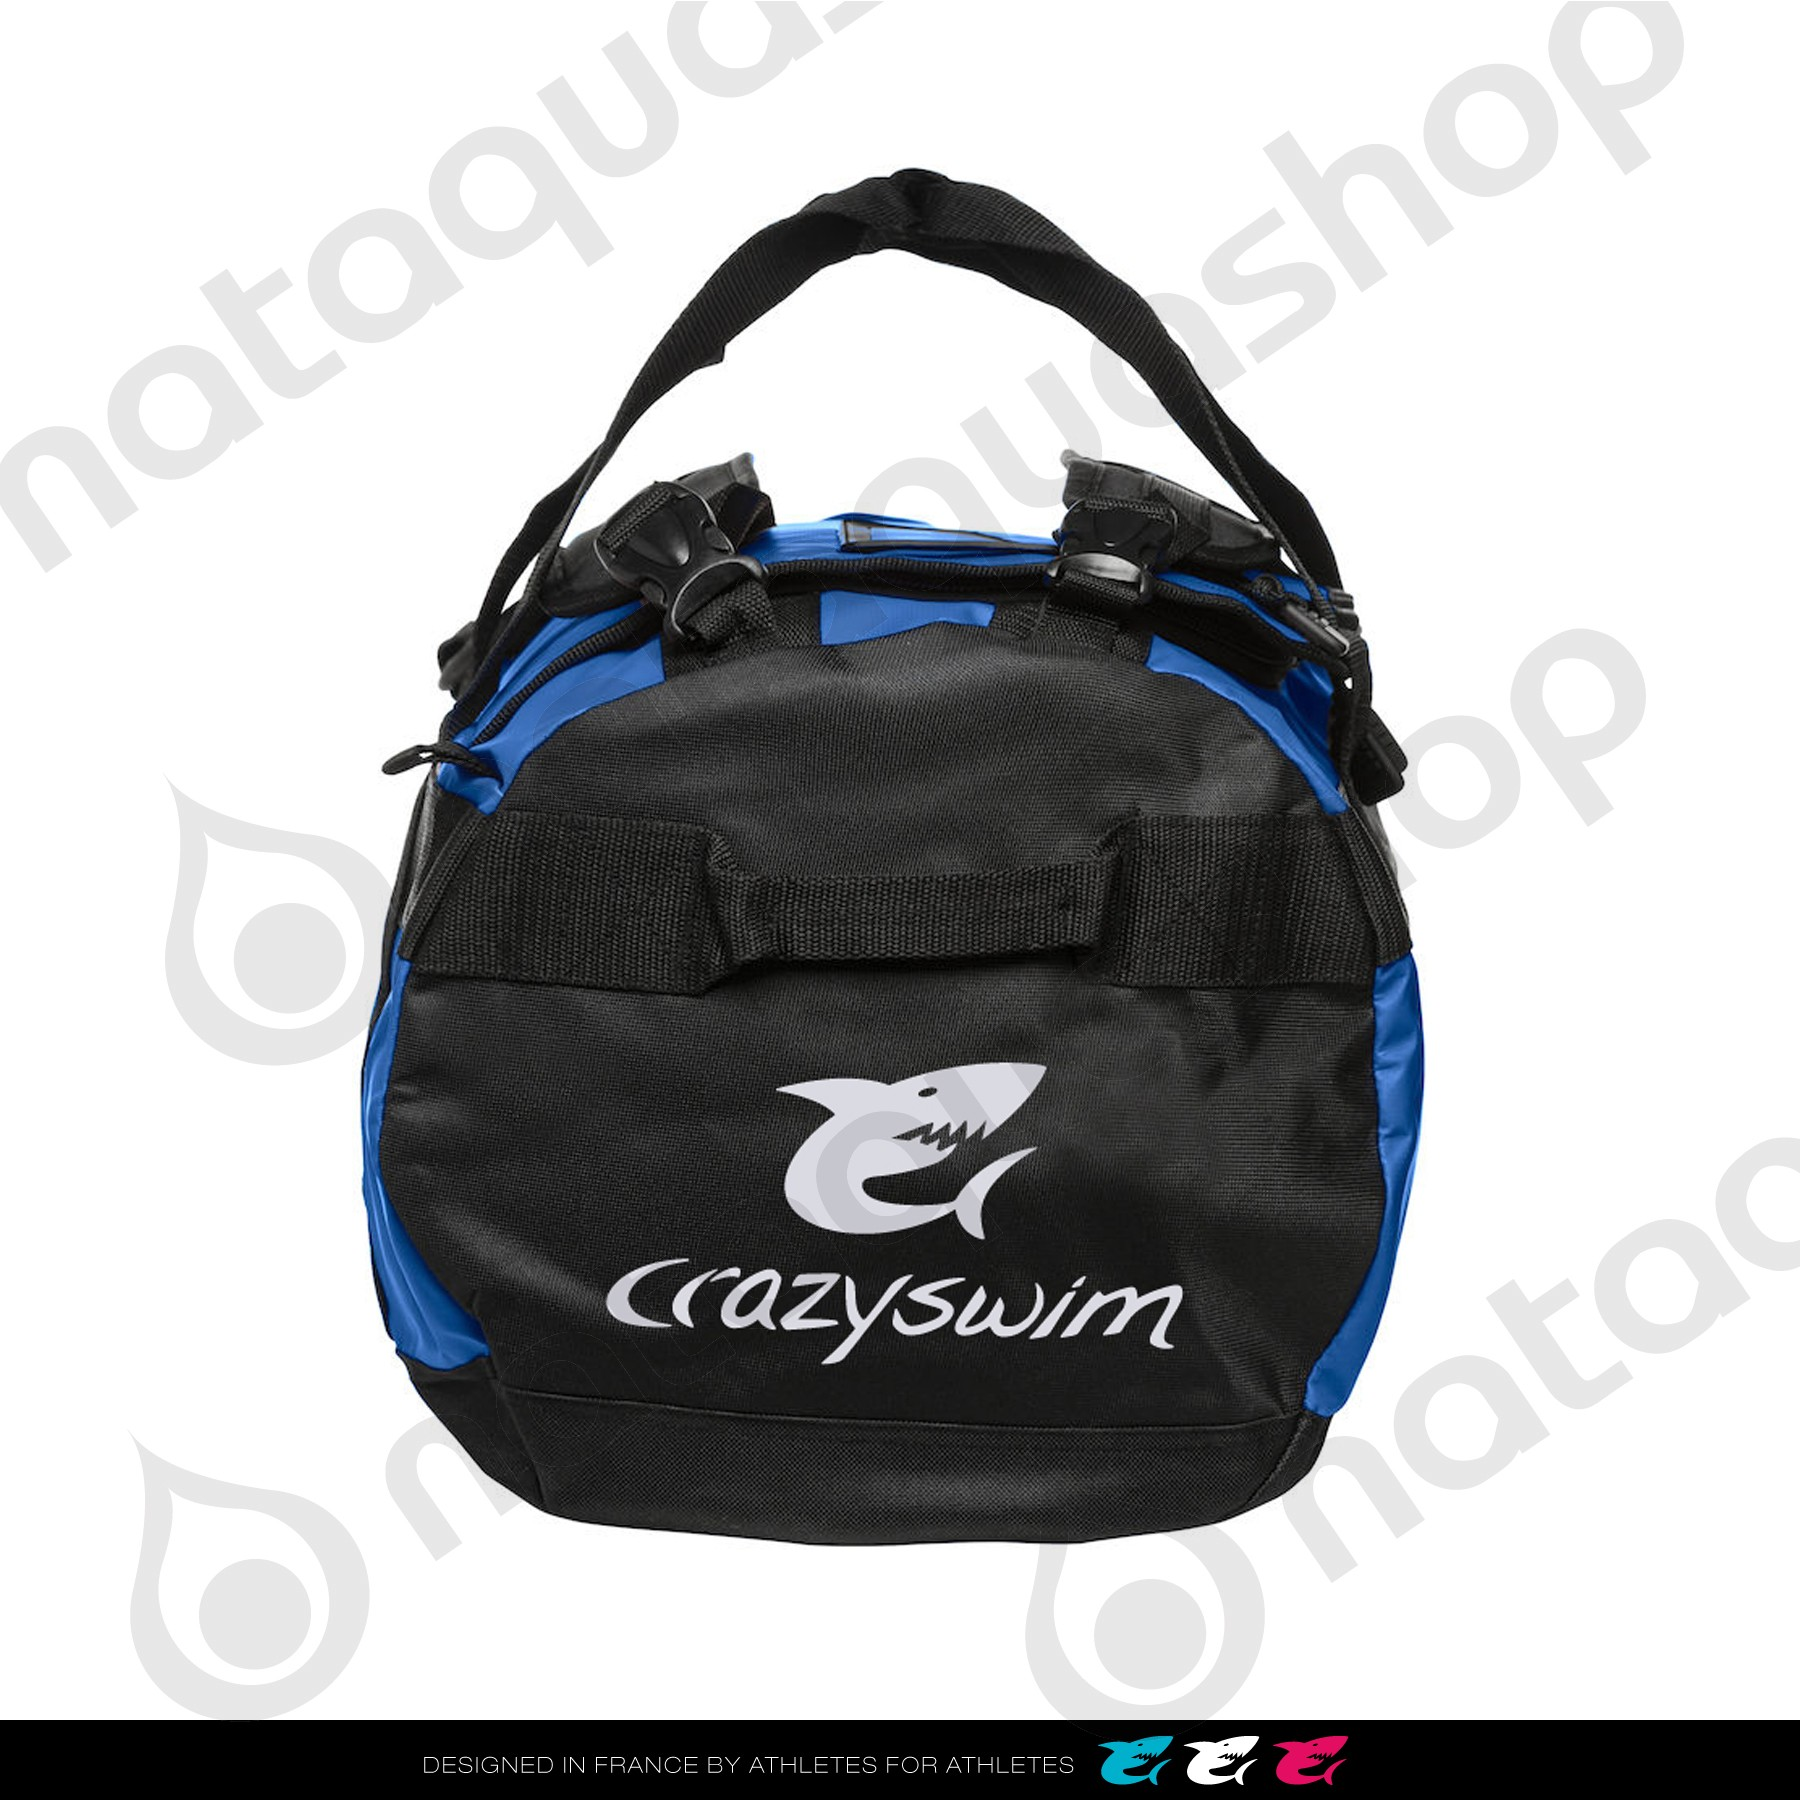 Deluxe Holdall Medium Bag - 42litres